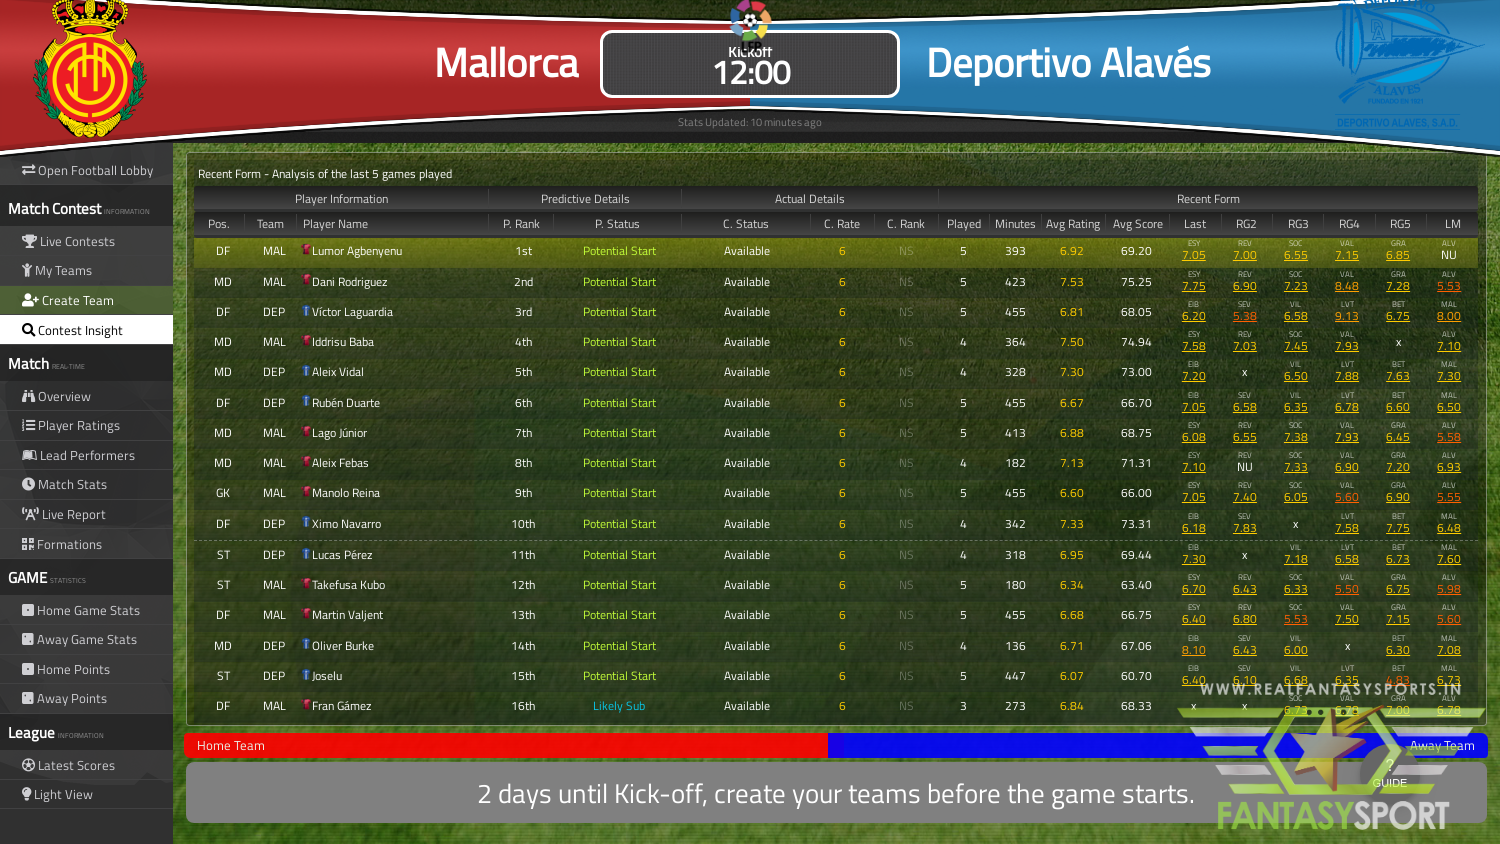 Dream Team Pick For Mallorca Vs Deportivo Alav S